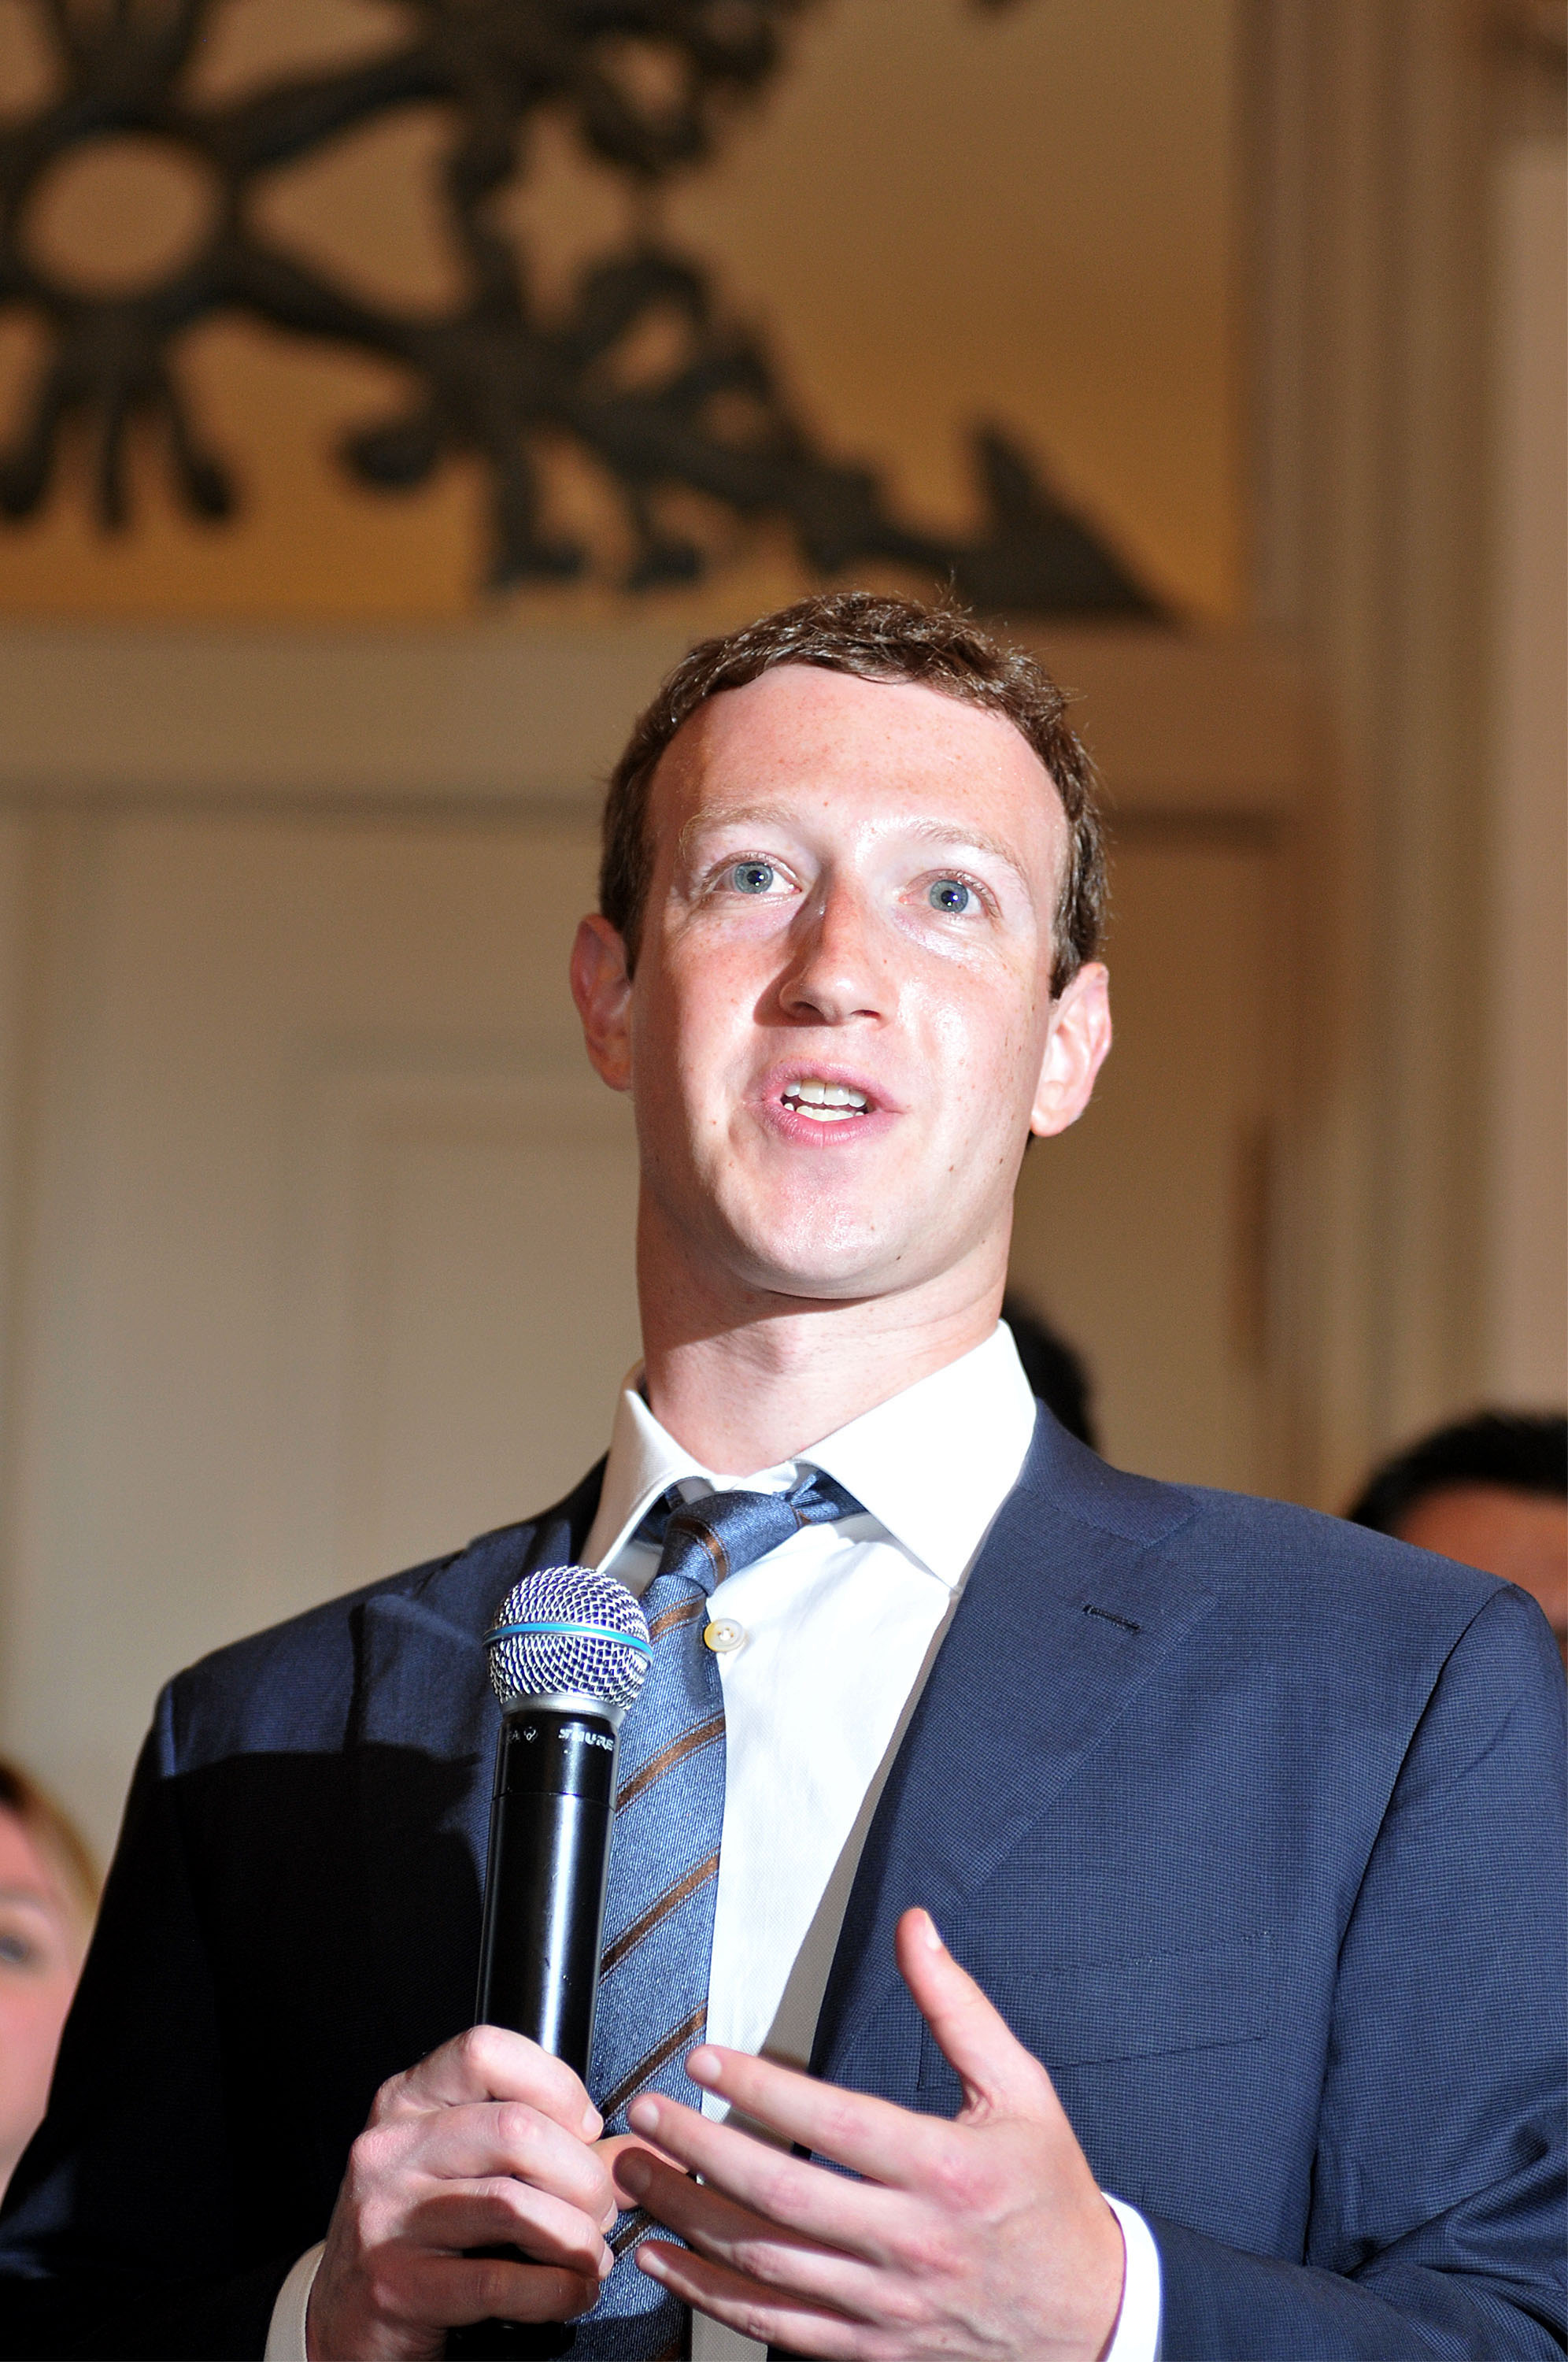 Facebook founder Mark Zuckenberg speaks to media after the meeting with Indonesian President-elect Joko Widodo in Jakarta, Indonesia on October 13, 2014.